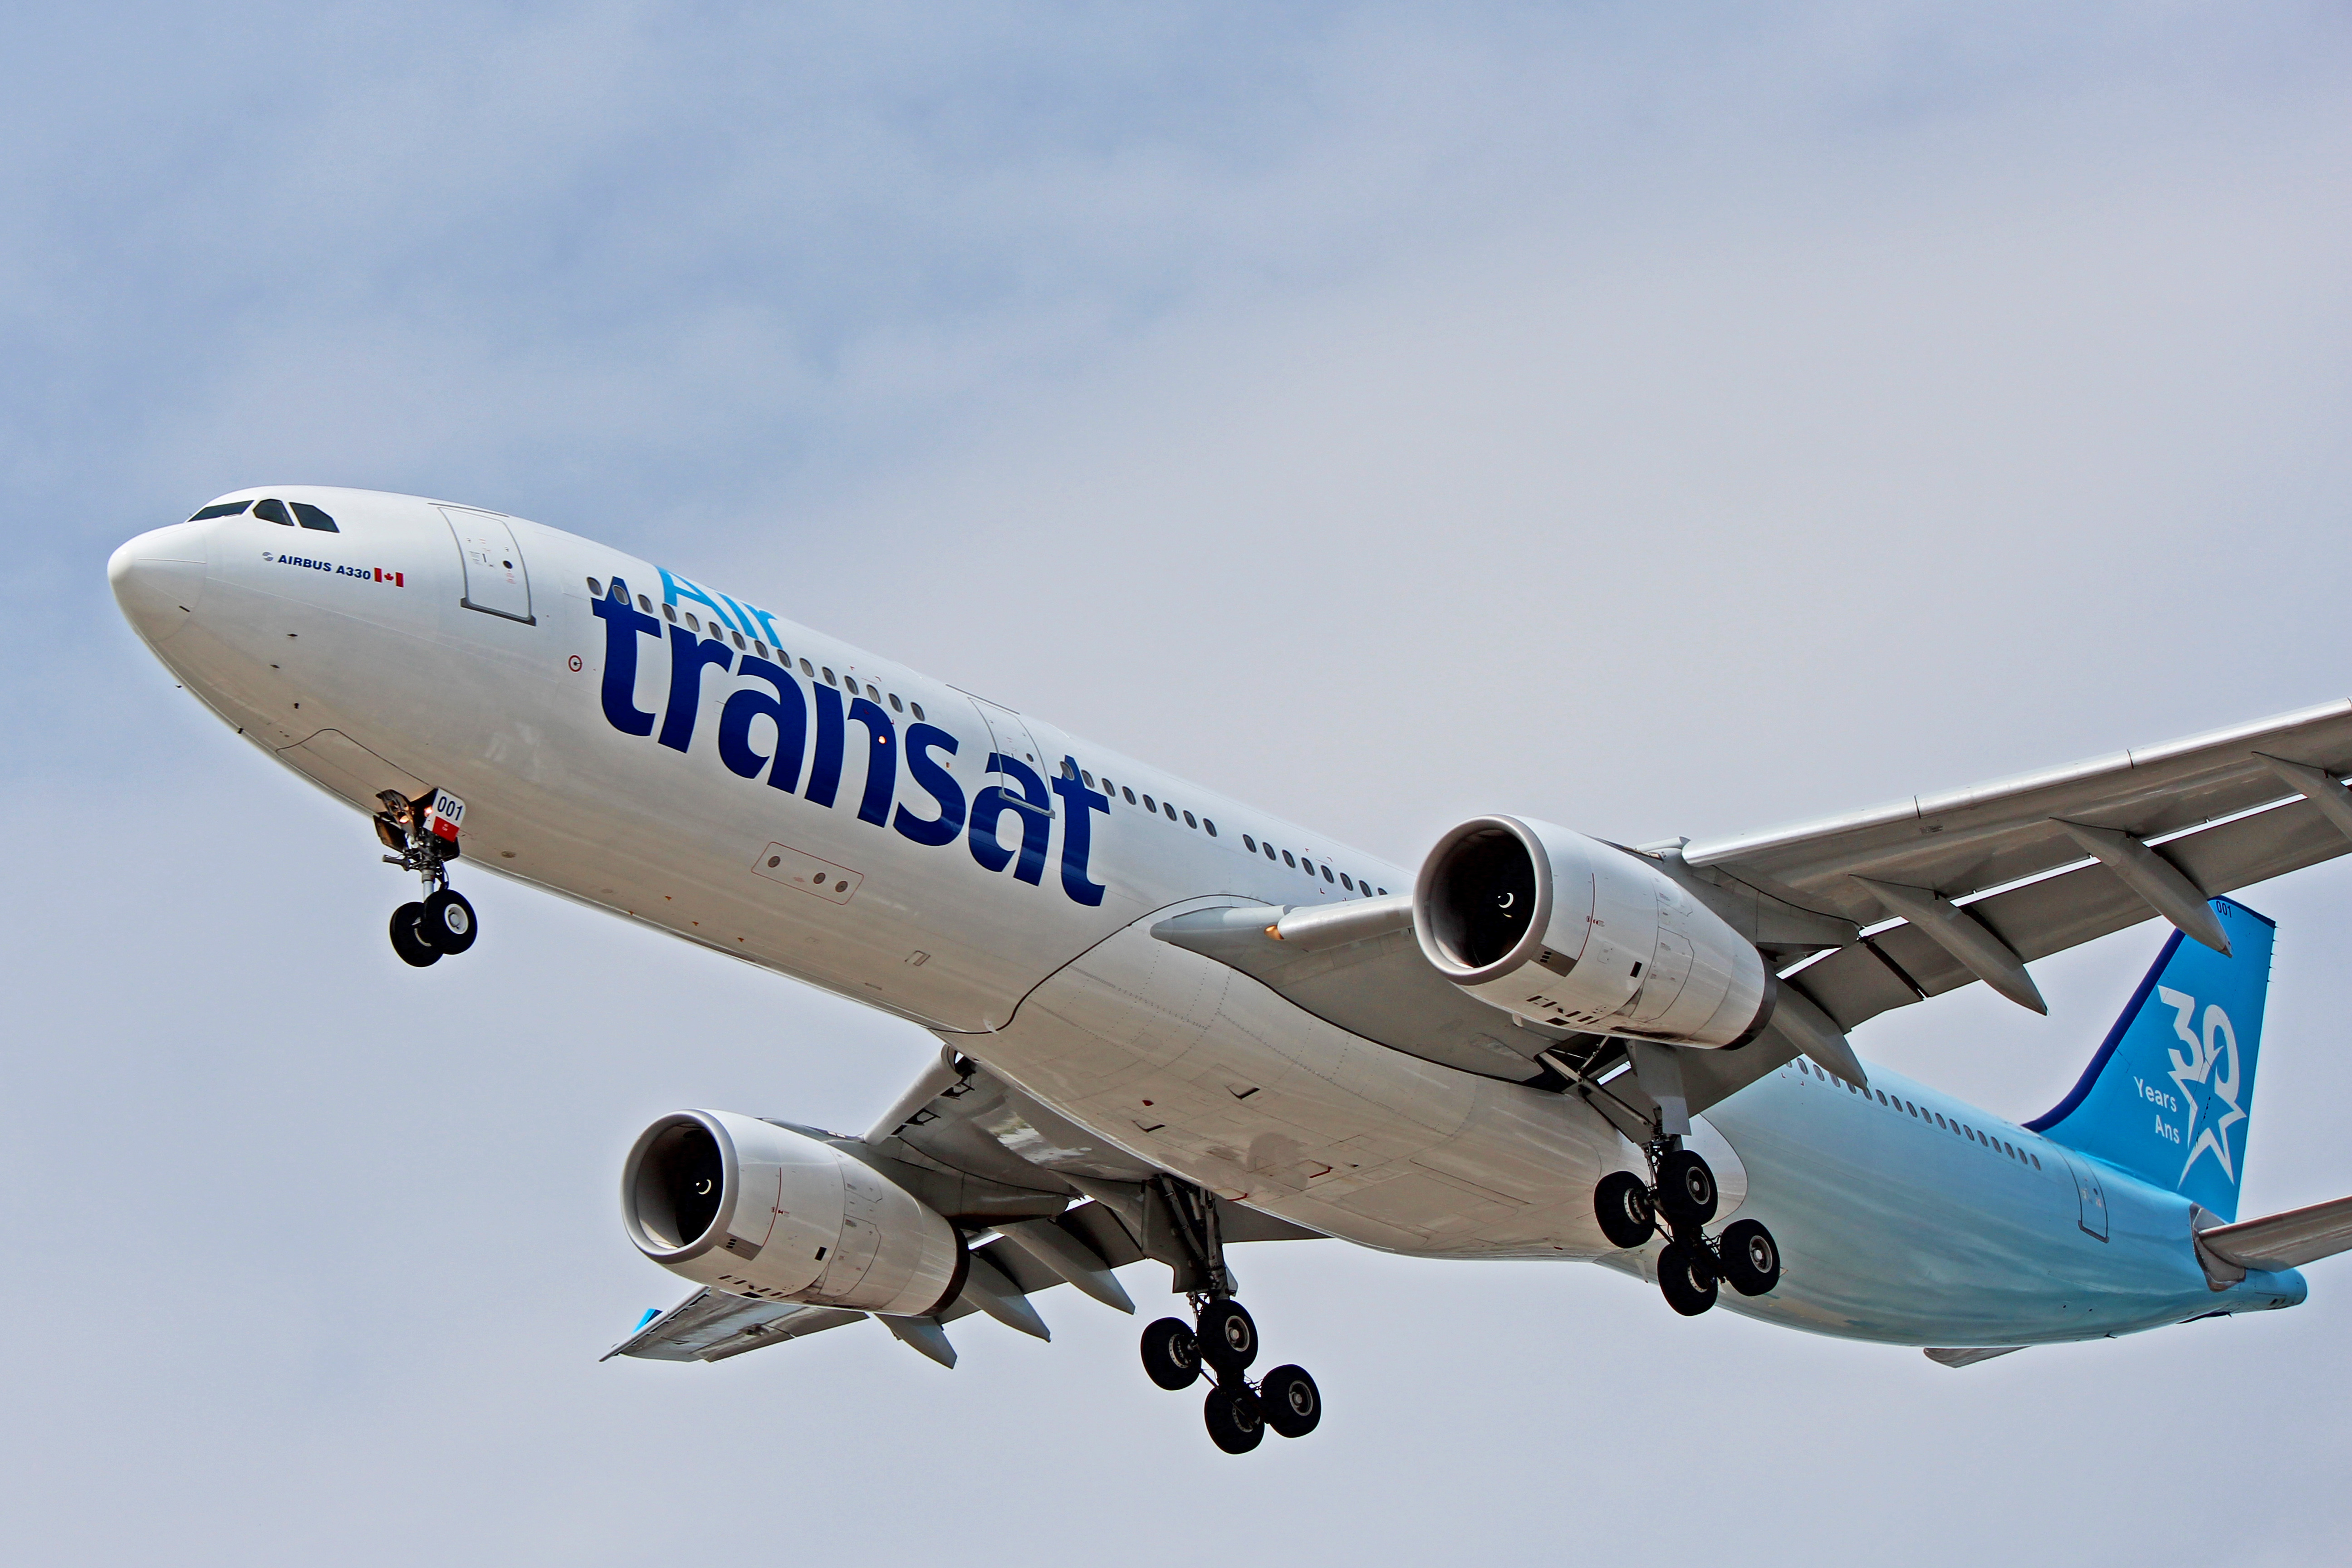 C-GKTS: Air Transat Airbus A330-300 (With 30 Year